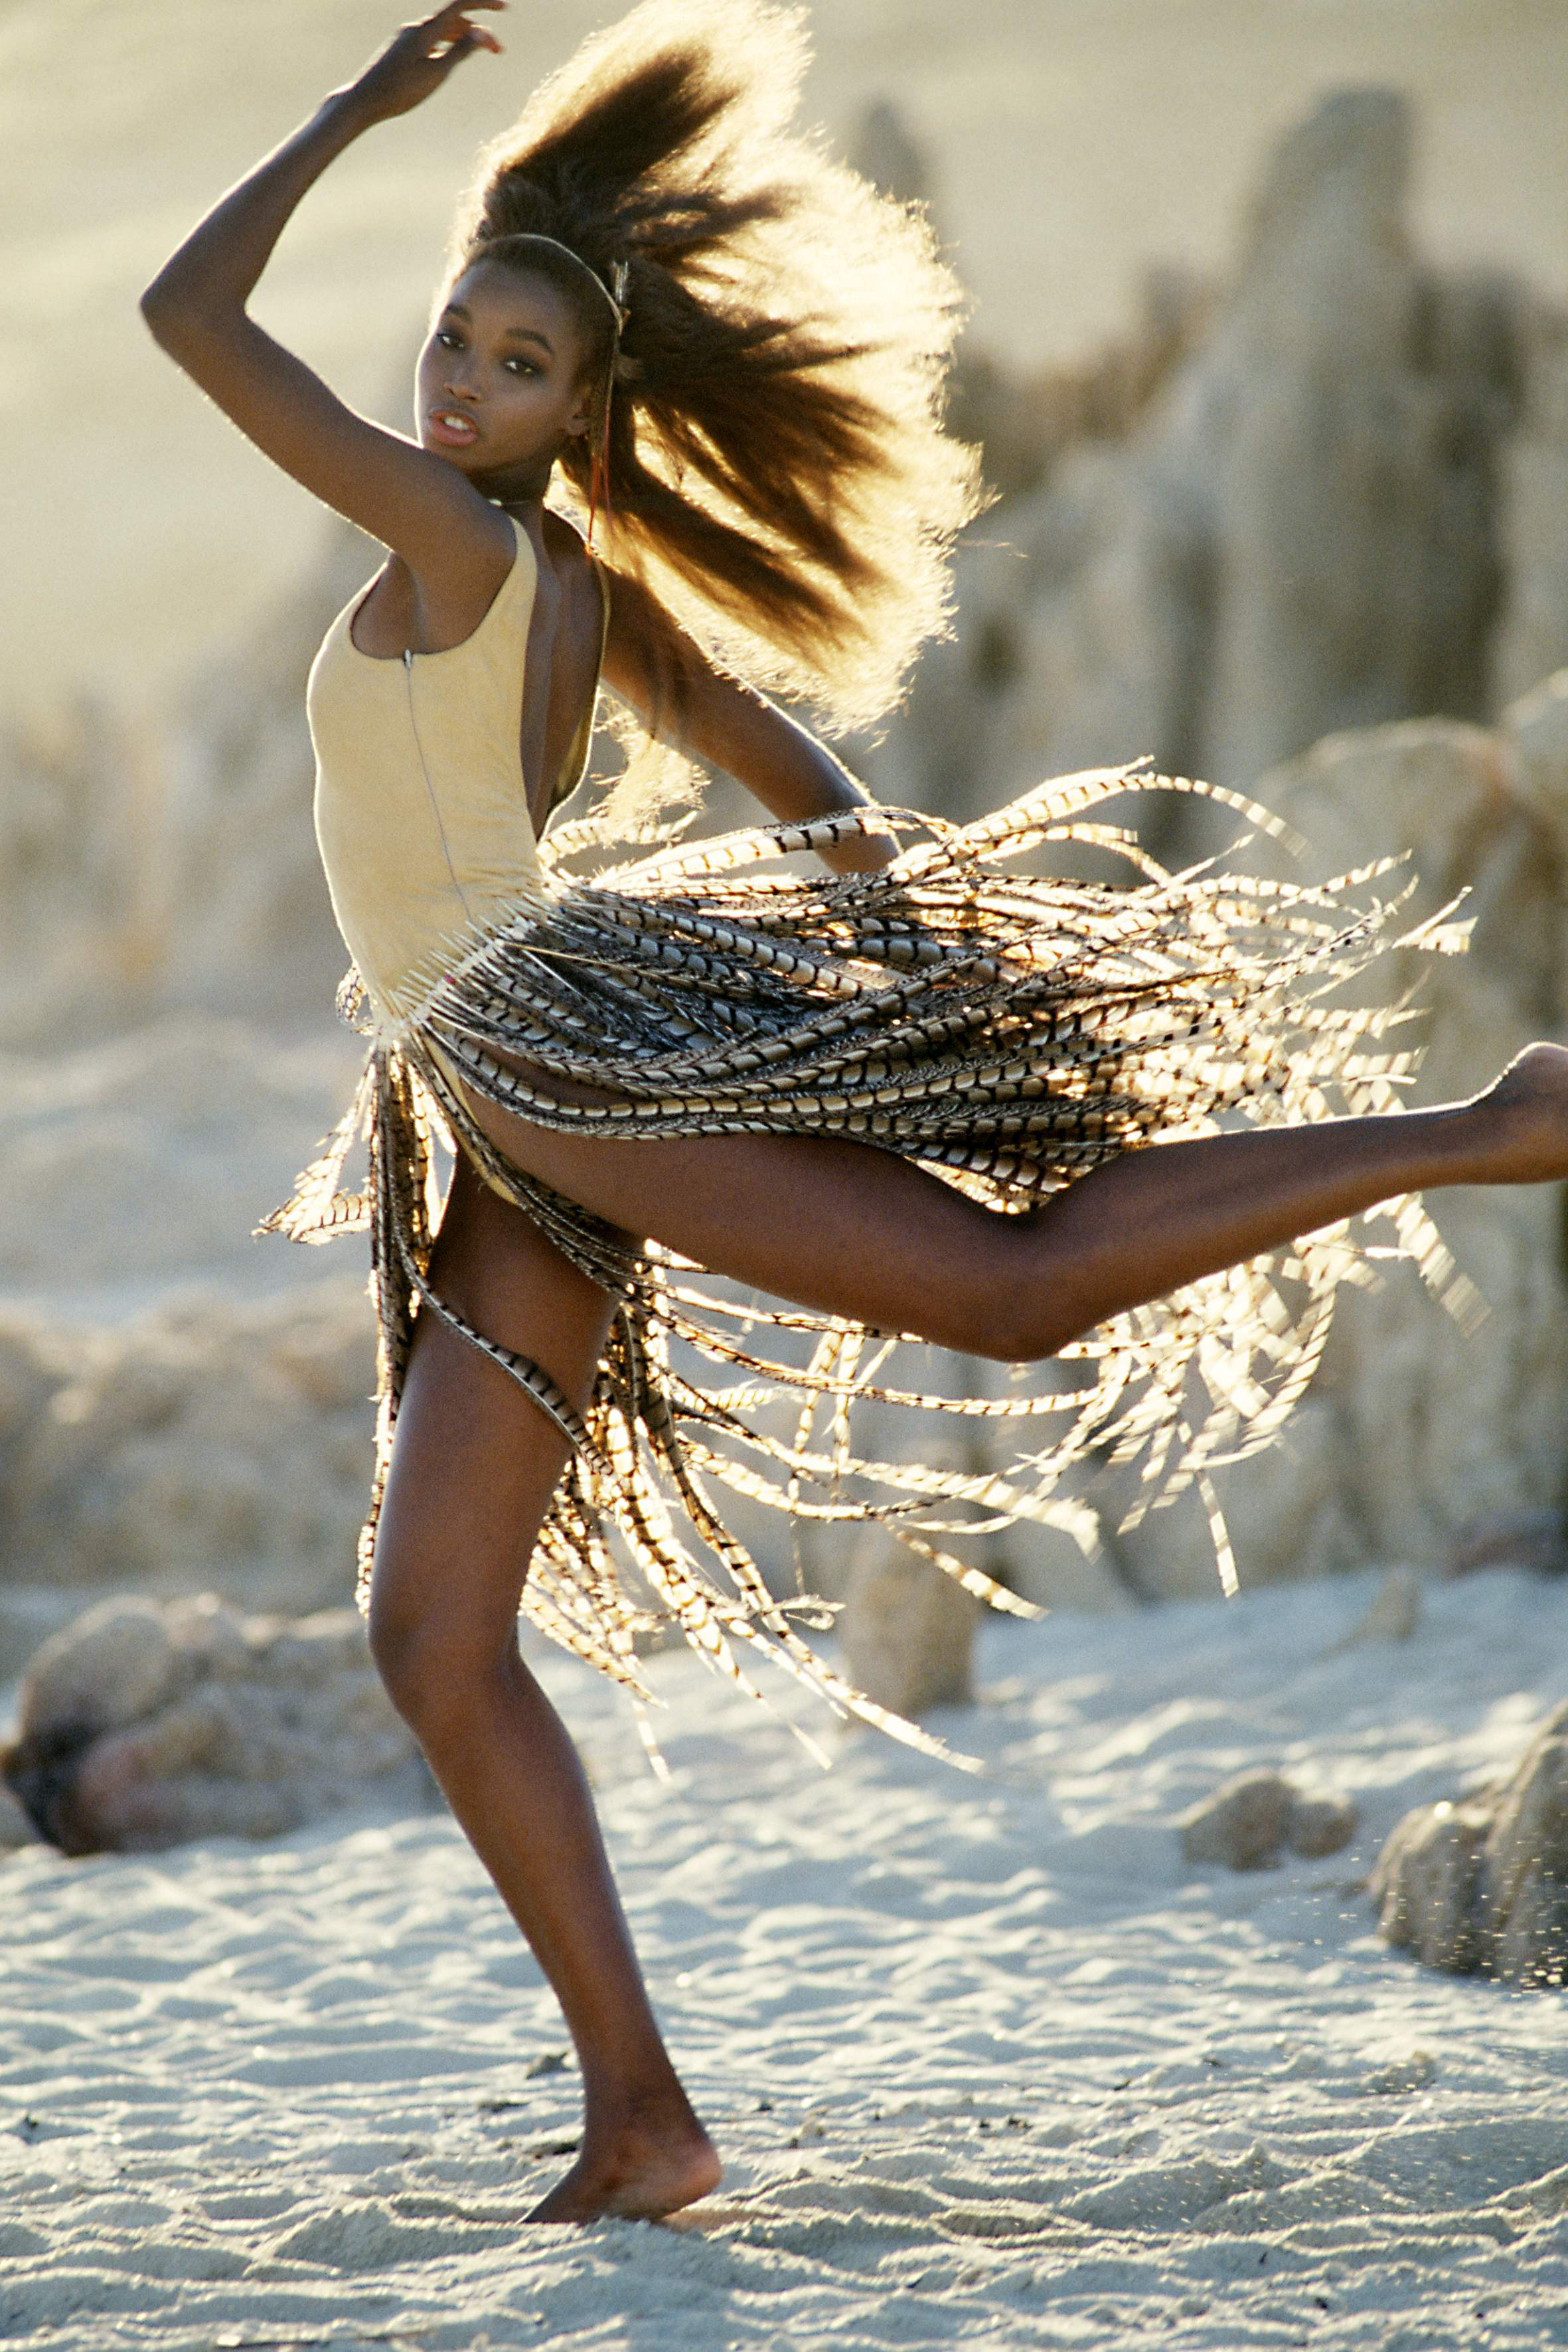 Beverly Peele striking a dance pose on a beach with a feather skirt